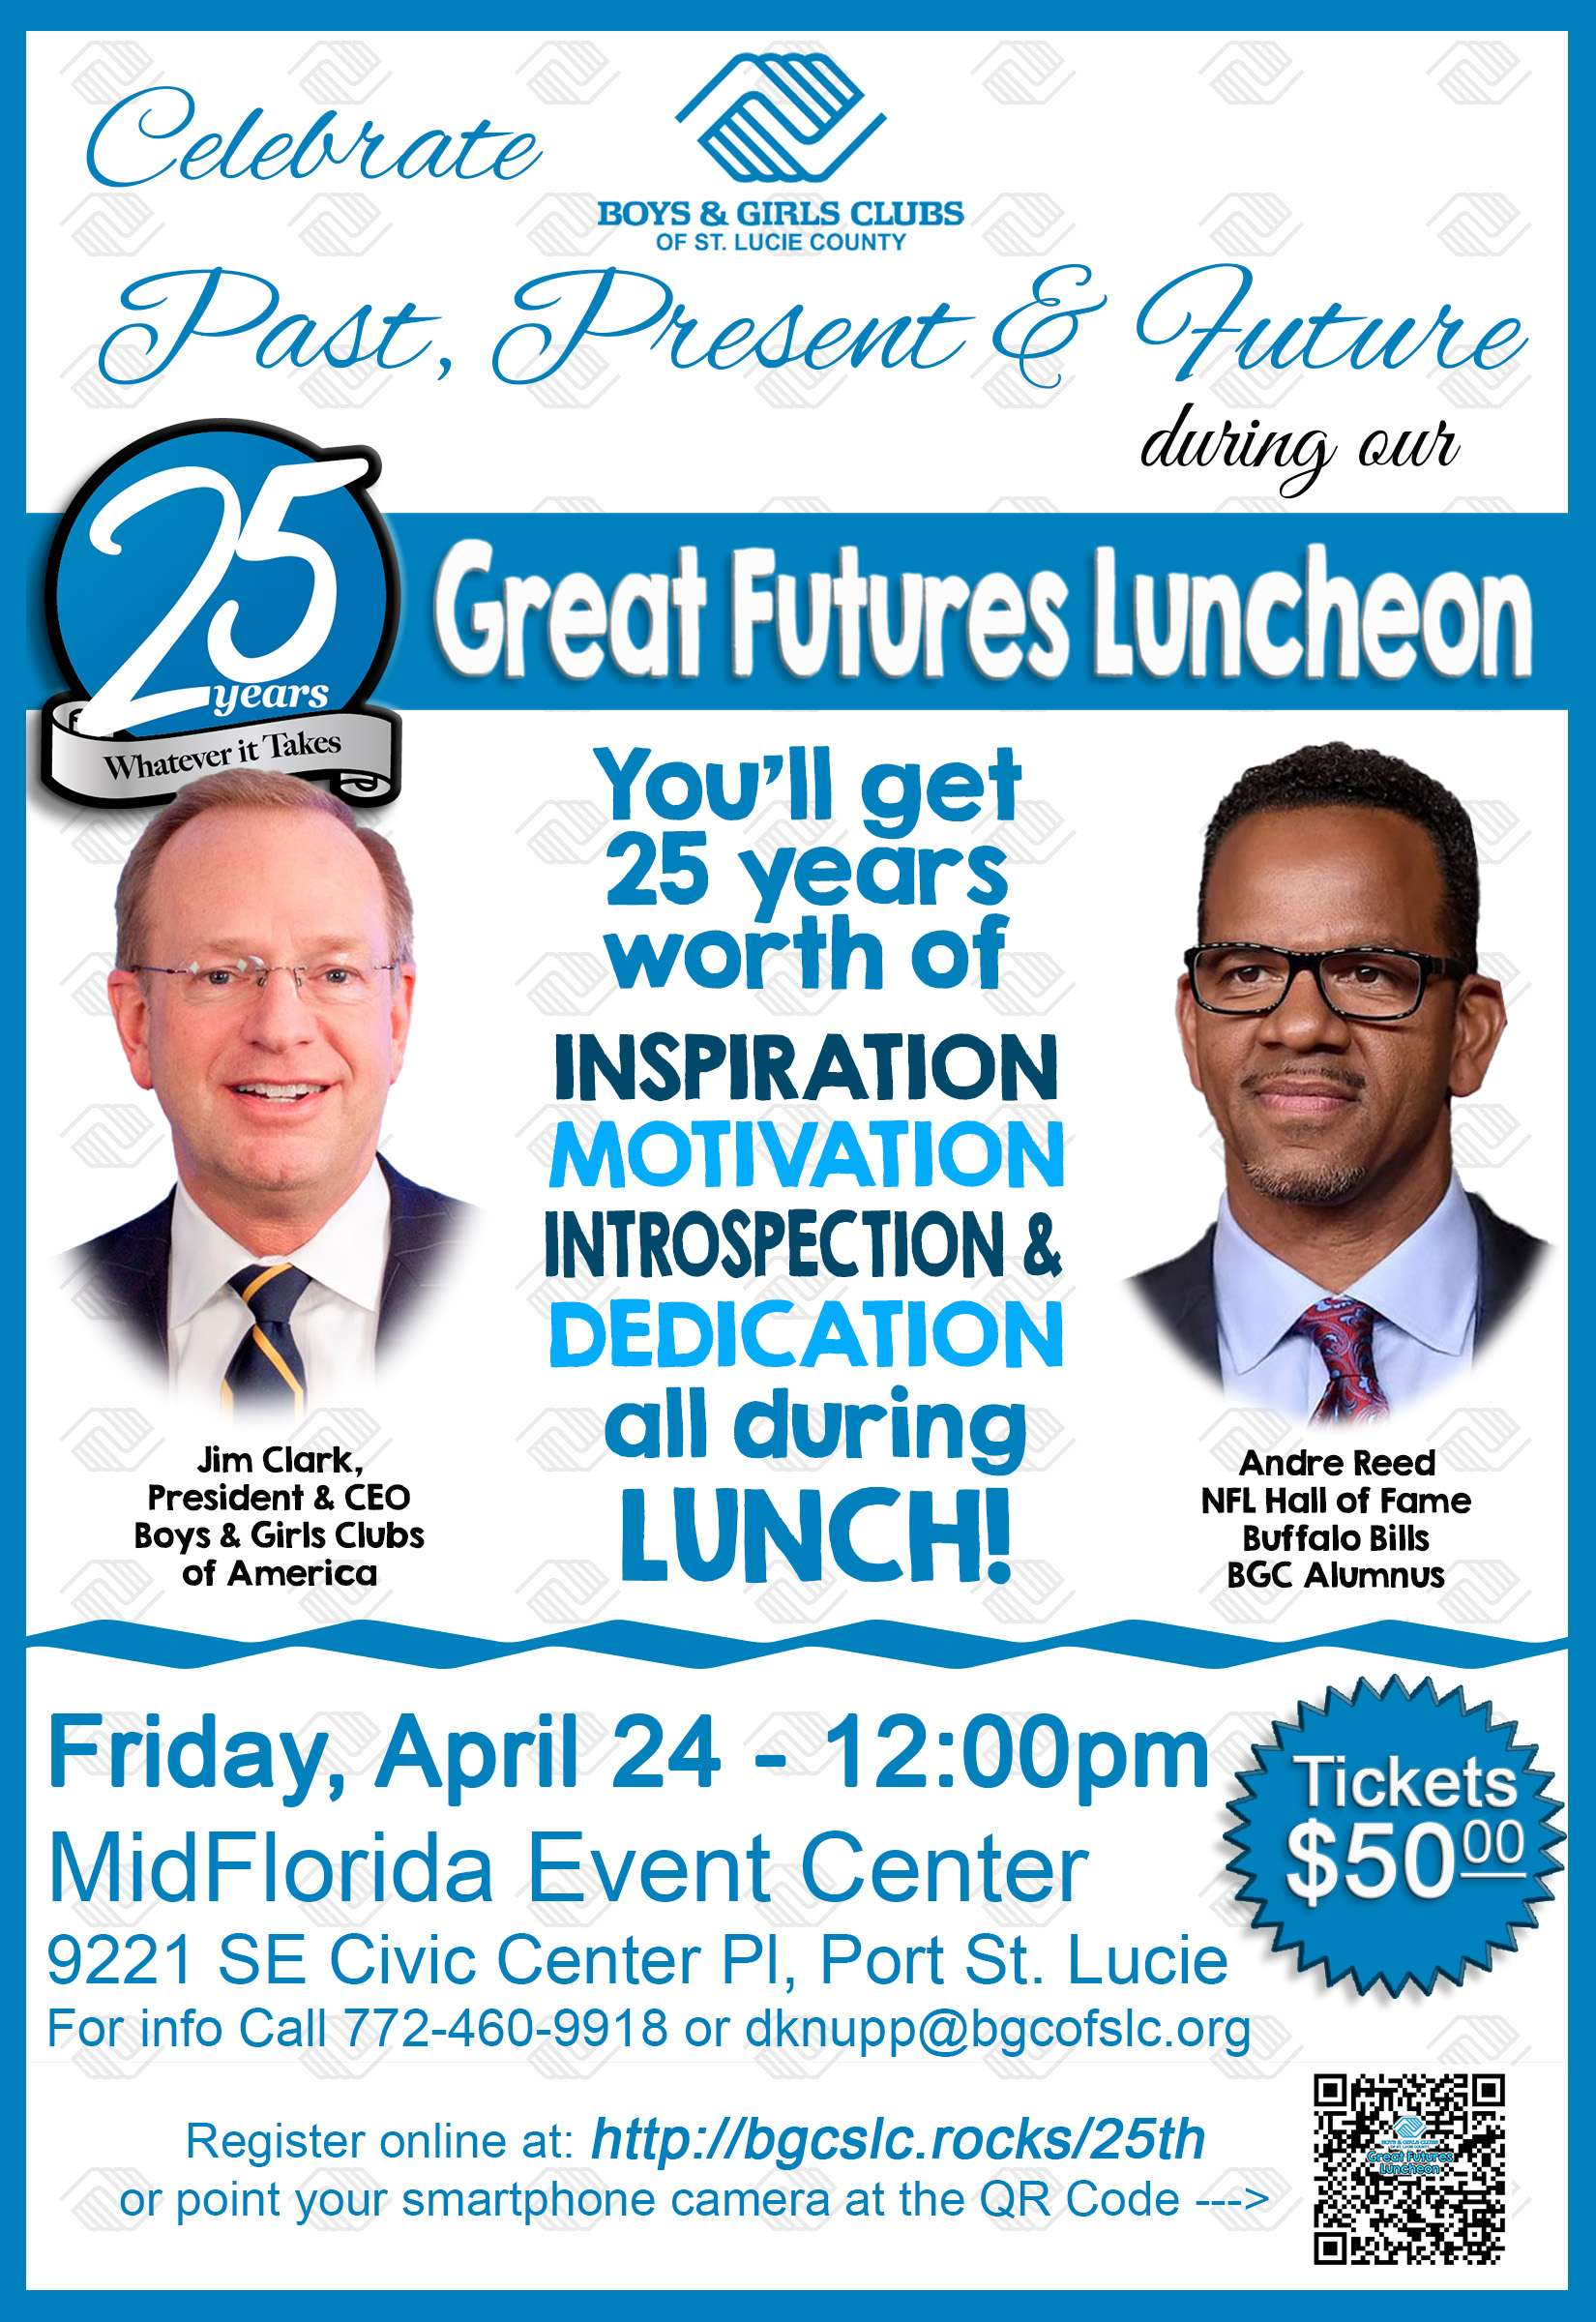 Great Futures Luncheon Features Dynamic Speakers To Celebrate 25th Anniversary!